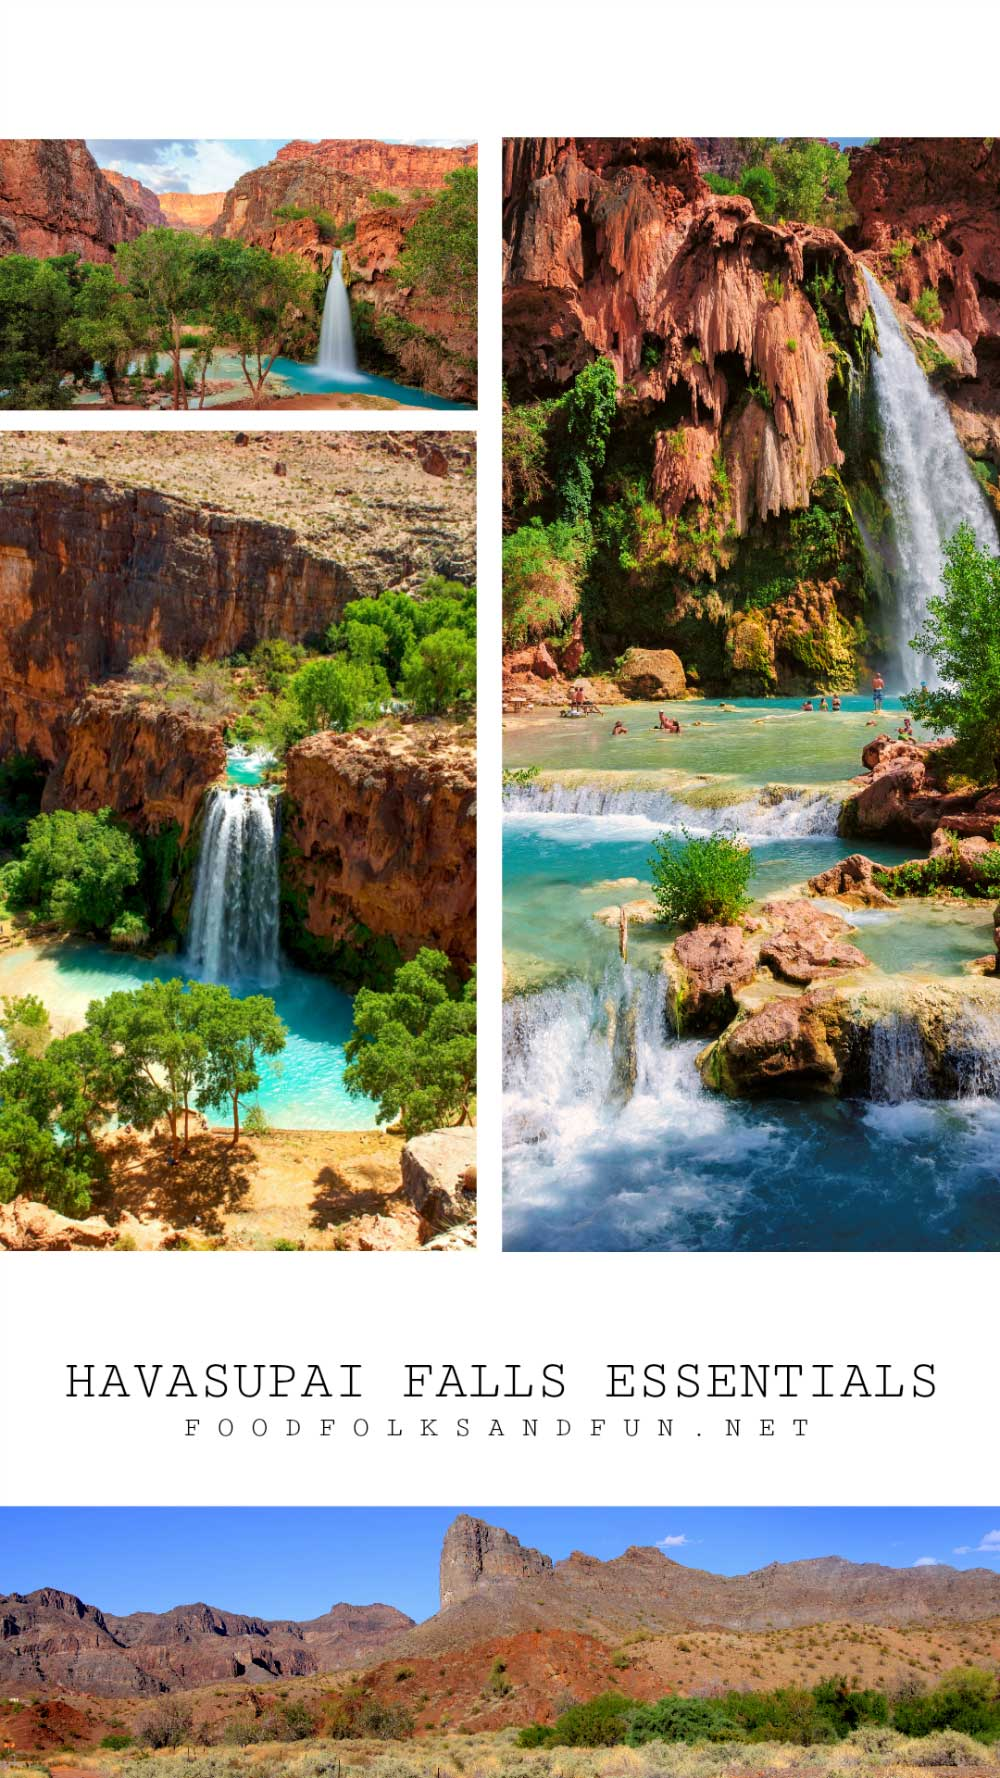 Havasupai Falls is one of those places that you must see in your lifetime. It takes a bit of time and planning to get there, but it's SO worth it! Here's an ultimate list of do's and don'ts for planning your trip to Havasupai Falls Arizona!  via @foodfolksandfun